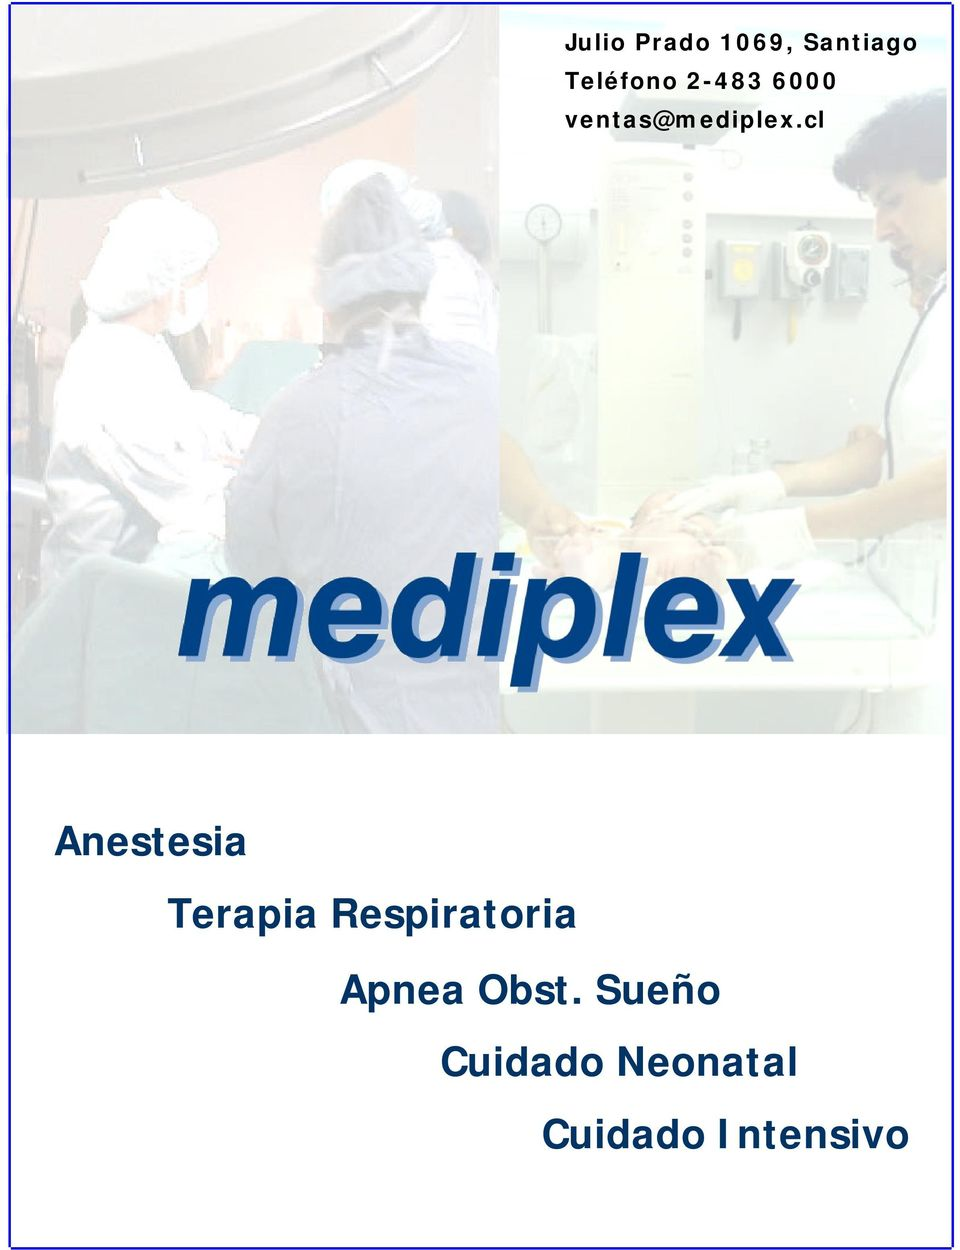 cl Anestesia Terapia Respiratoria